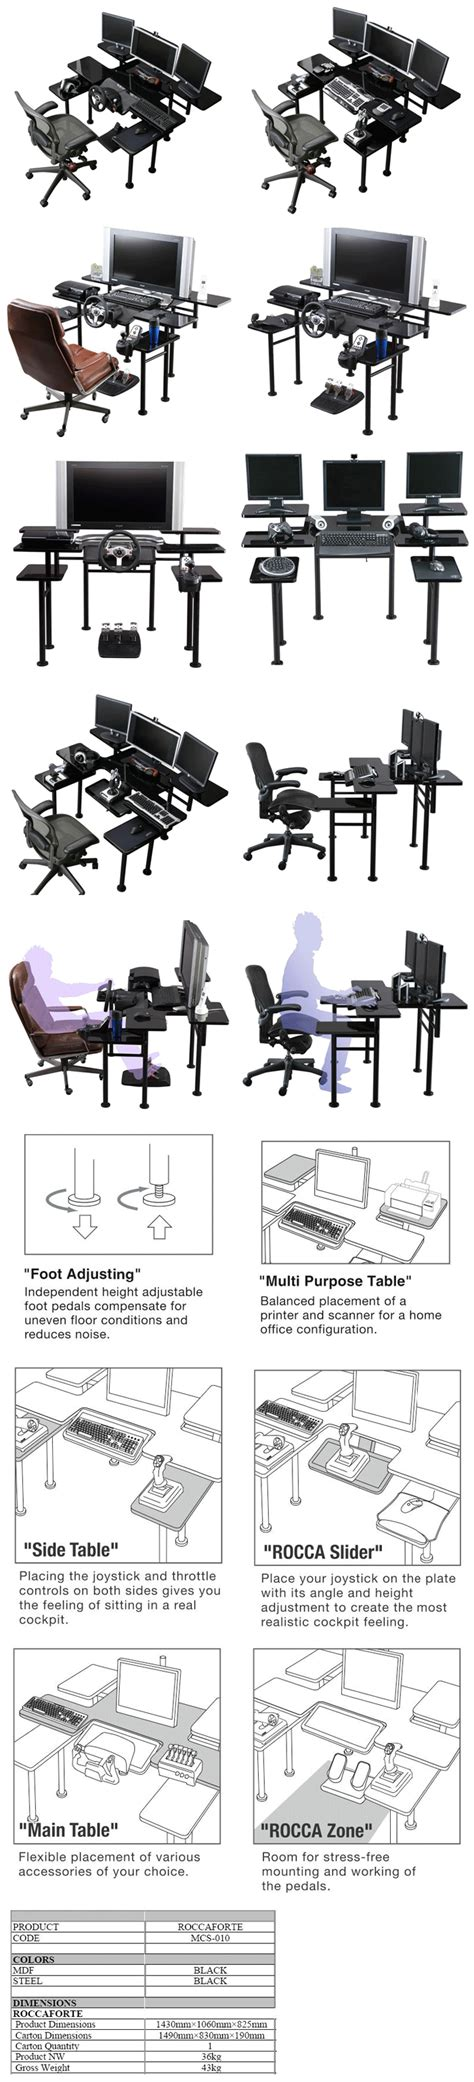 Roccaforte The Ultimate Gaming Desk Ride Beyond Your Roccaforte Ultimate Gaming Desk